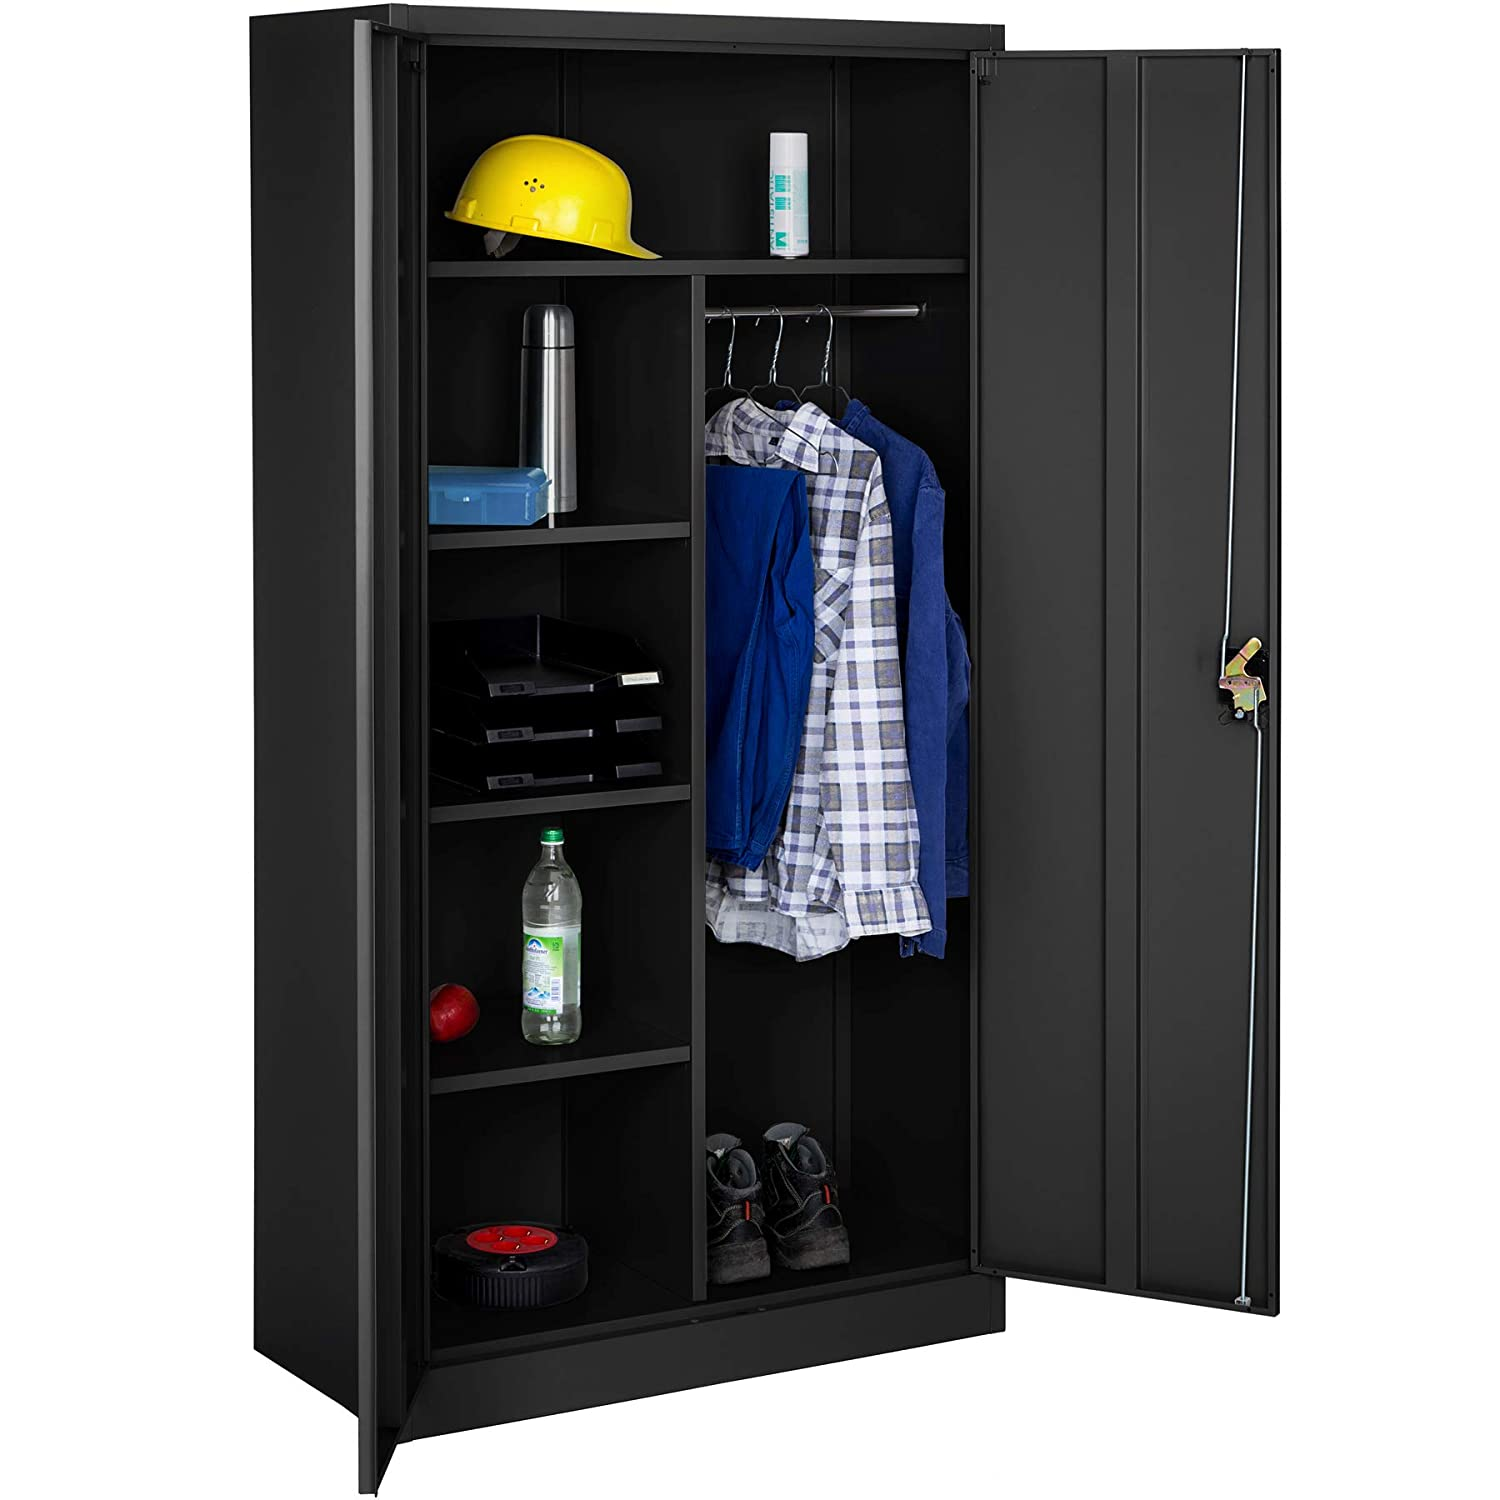 TecTake 402940 Office Storage Cupboard Metal with 4 Shelves and Rail | 2 doors + lock system | 180x90x40cm | Black